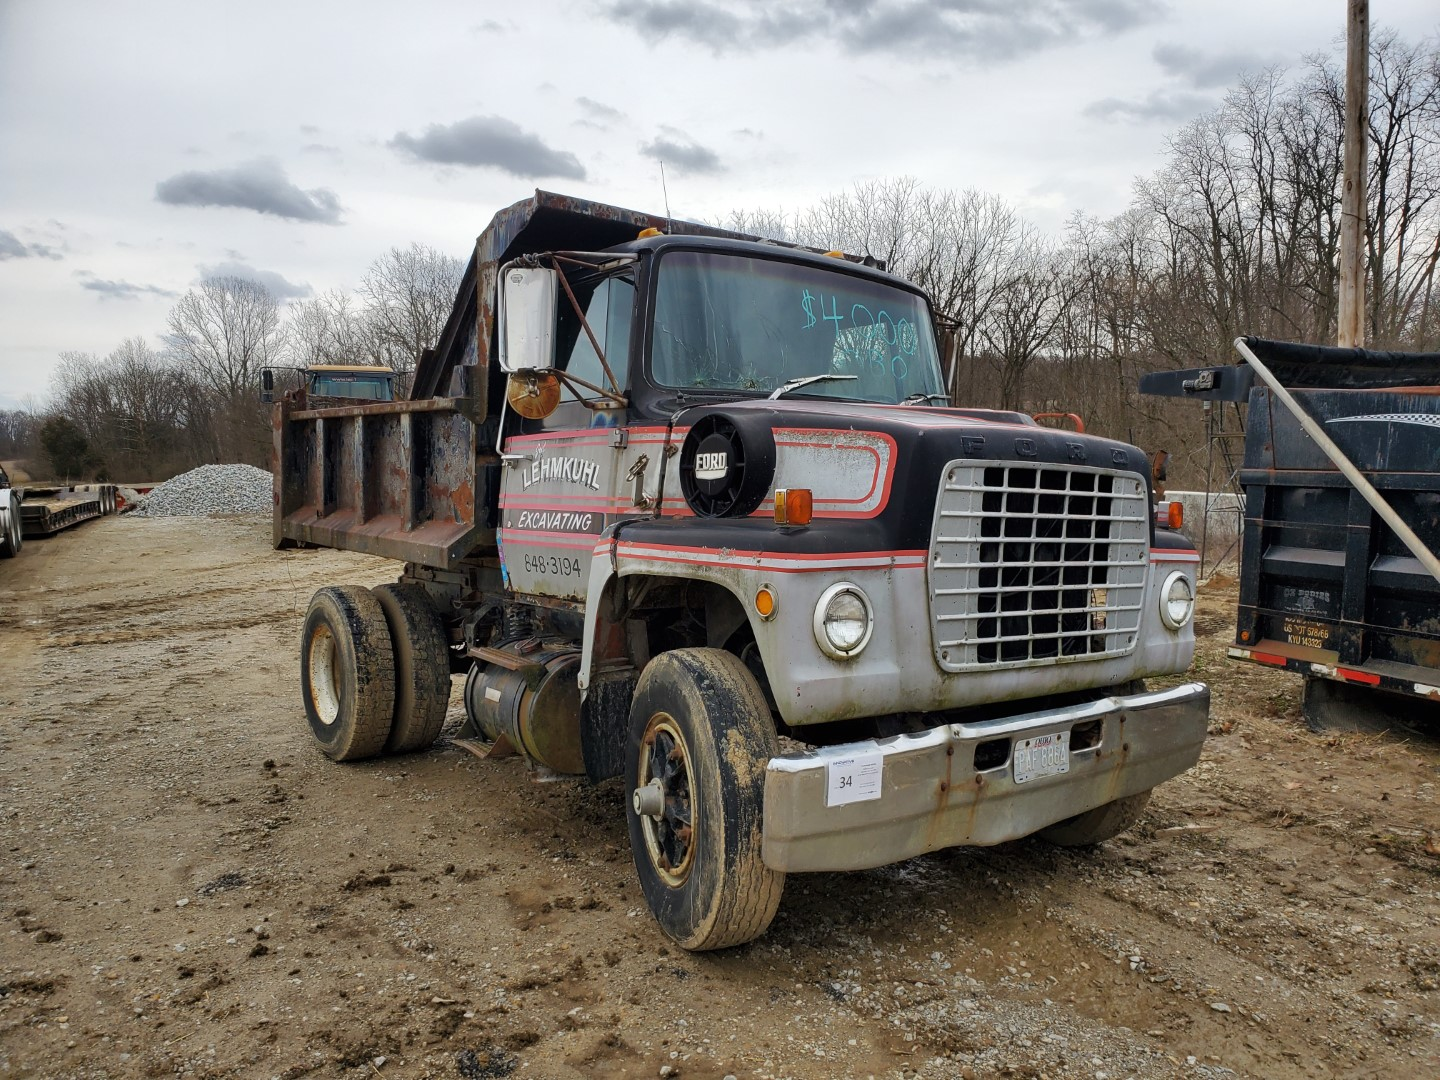 1976 Ford 8000 Single Axle Dump Truck, 9 ft Dump Bed, Manual Transmission, 2-Speed Axle, 86,500 Mile